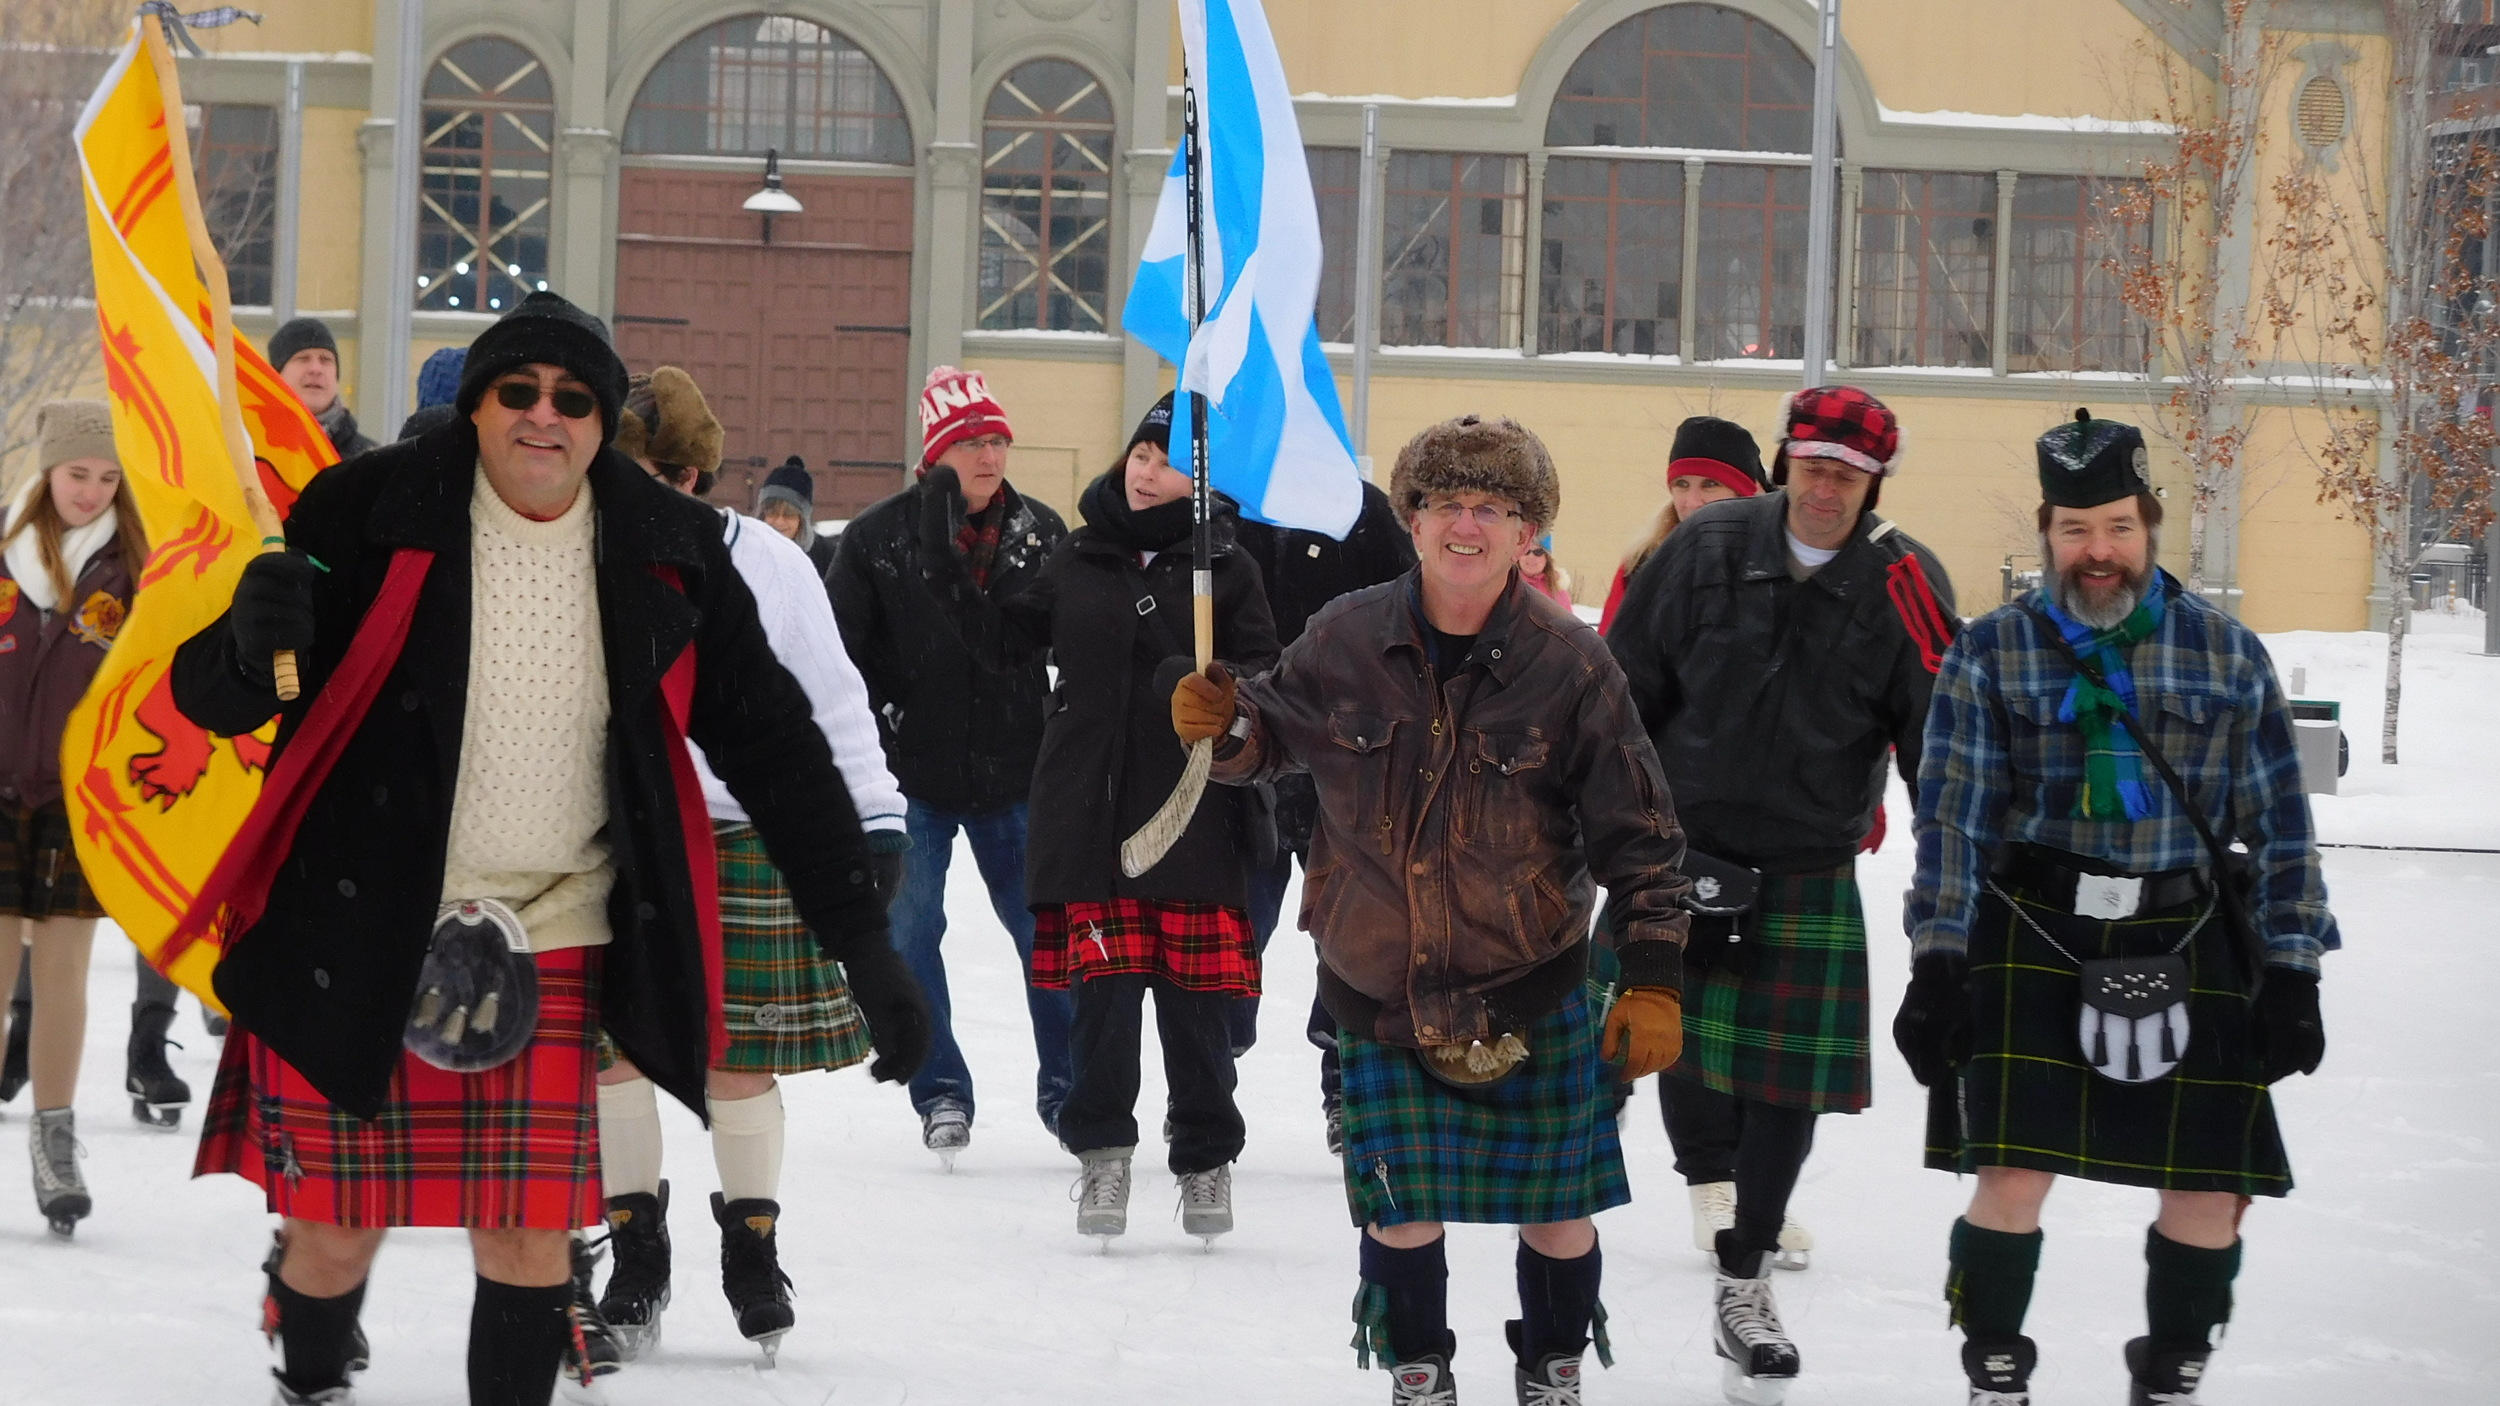 A great day for a kilt skate!